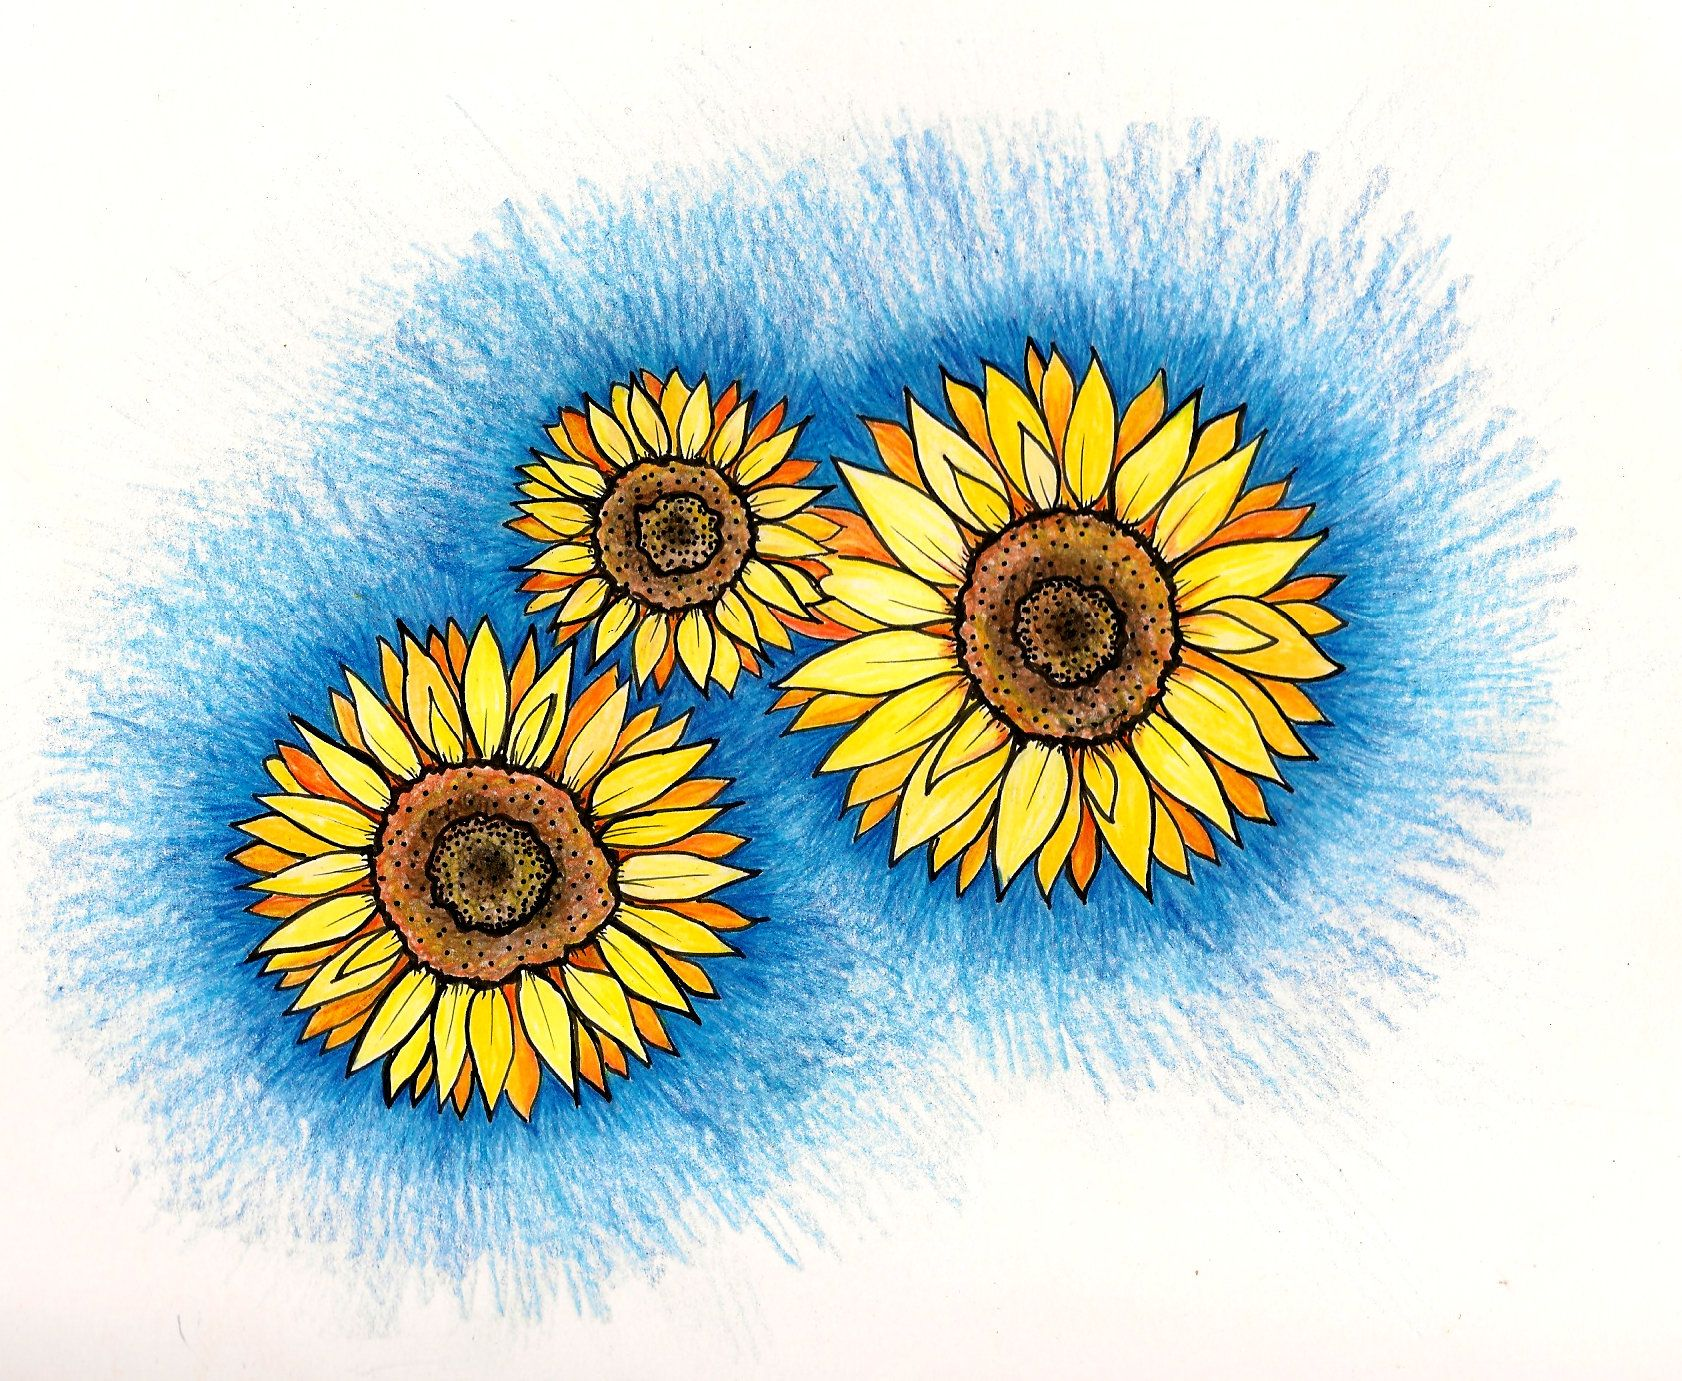 sunflowers colored pencil, original drawing